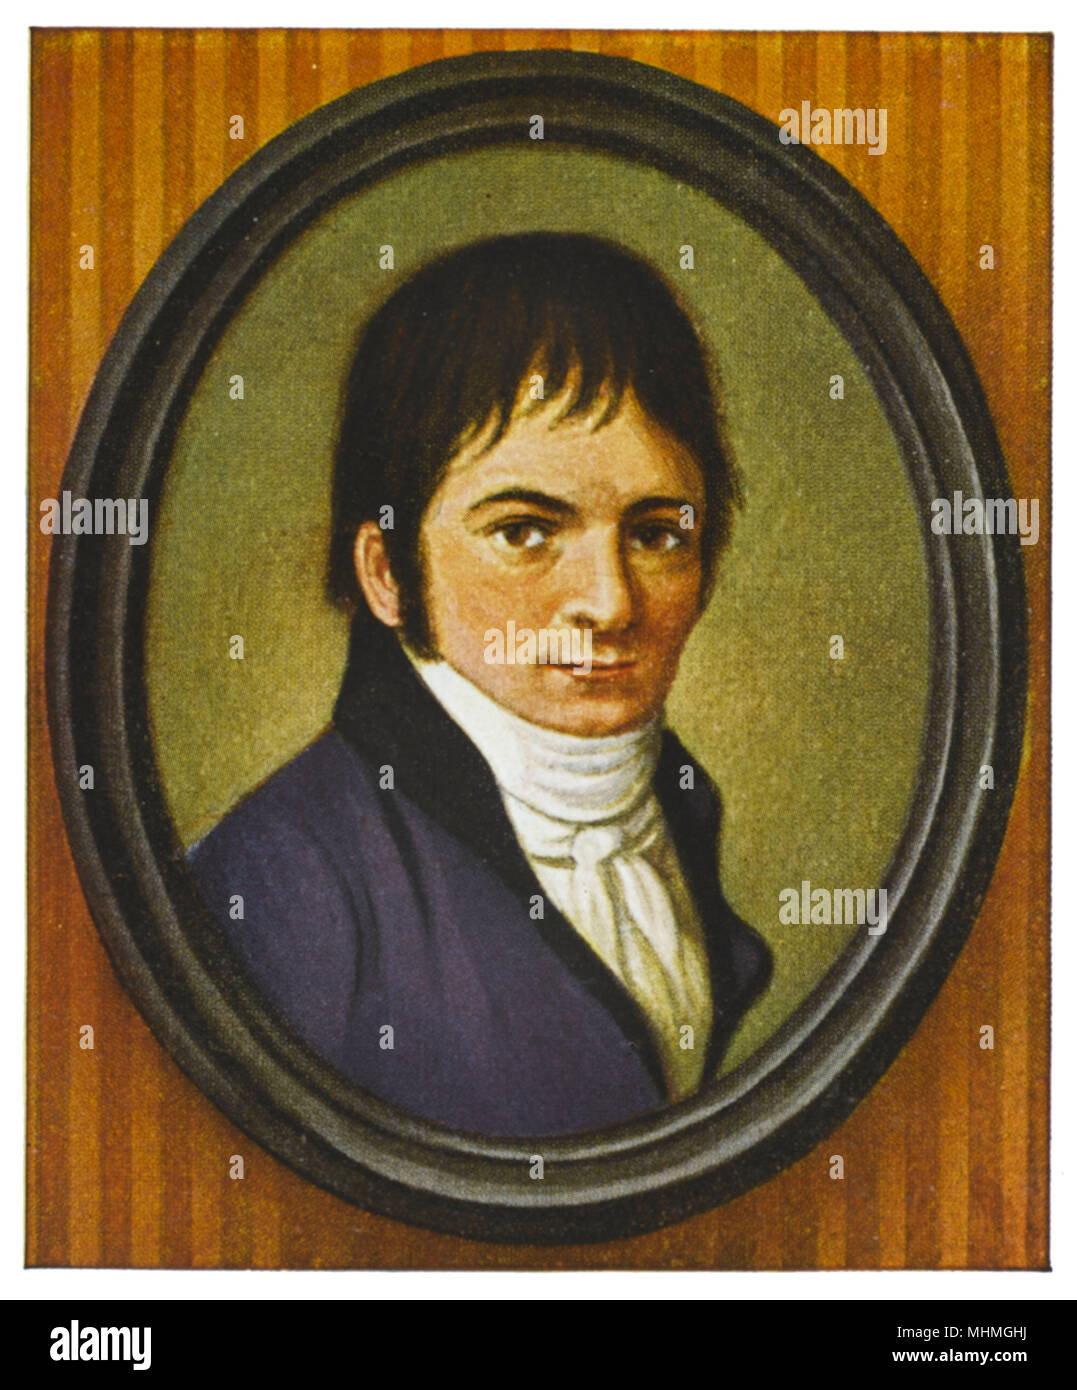 LUDWIG VAN BEETHOVEN Portrait at age 32       Date: 1770 - 1827 - Stock Image